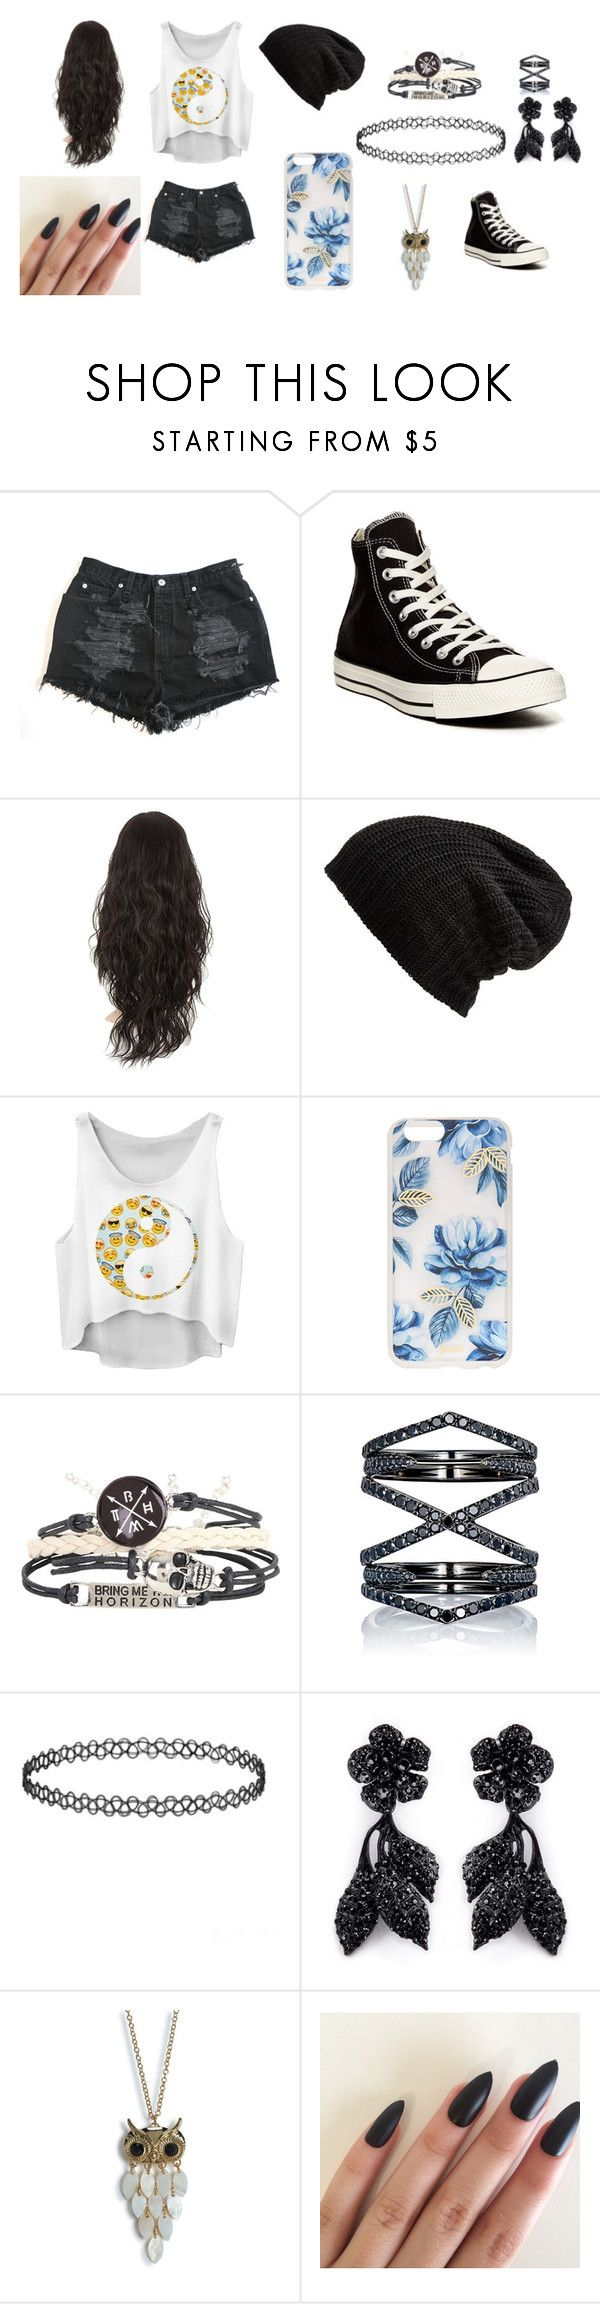 """Untitled #68"" by zahlia-tibbs on Polyvore featuring Converse, Free People, Sonix, Eva Fehren, Valentino and Aéropostale"